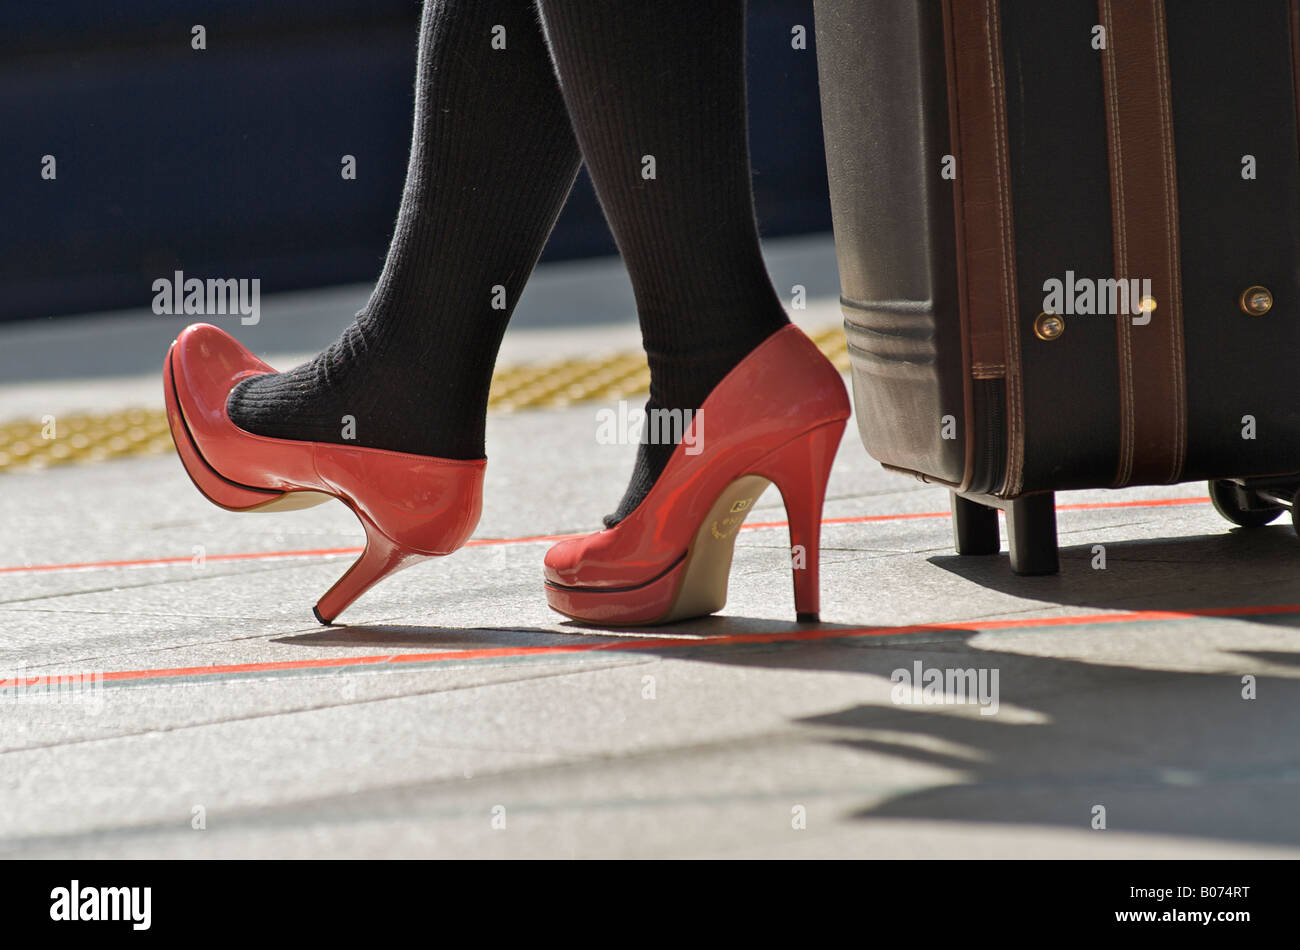 Bright pink shoes with high heels on a railway platorm. With suitcase - Stock Image